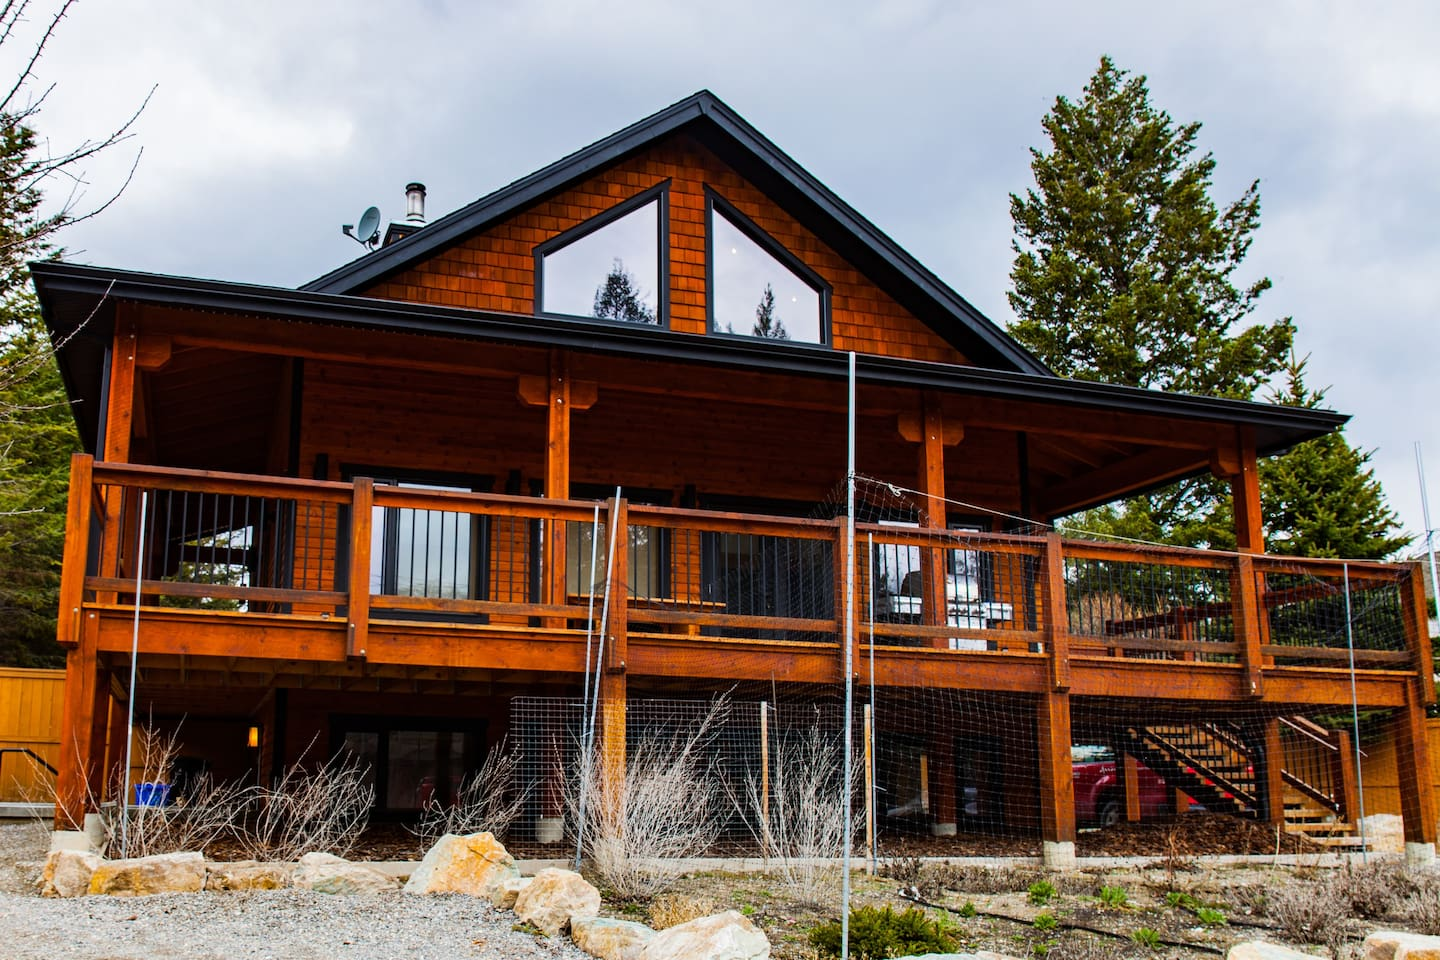 Street view of our home in Invermere